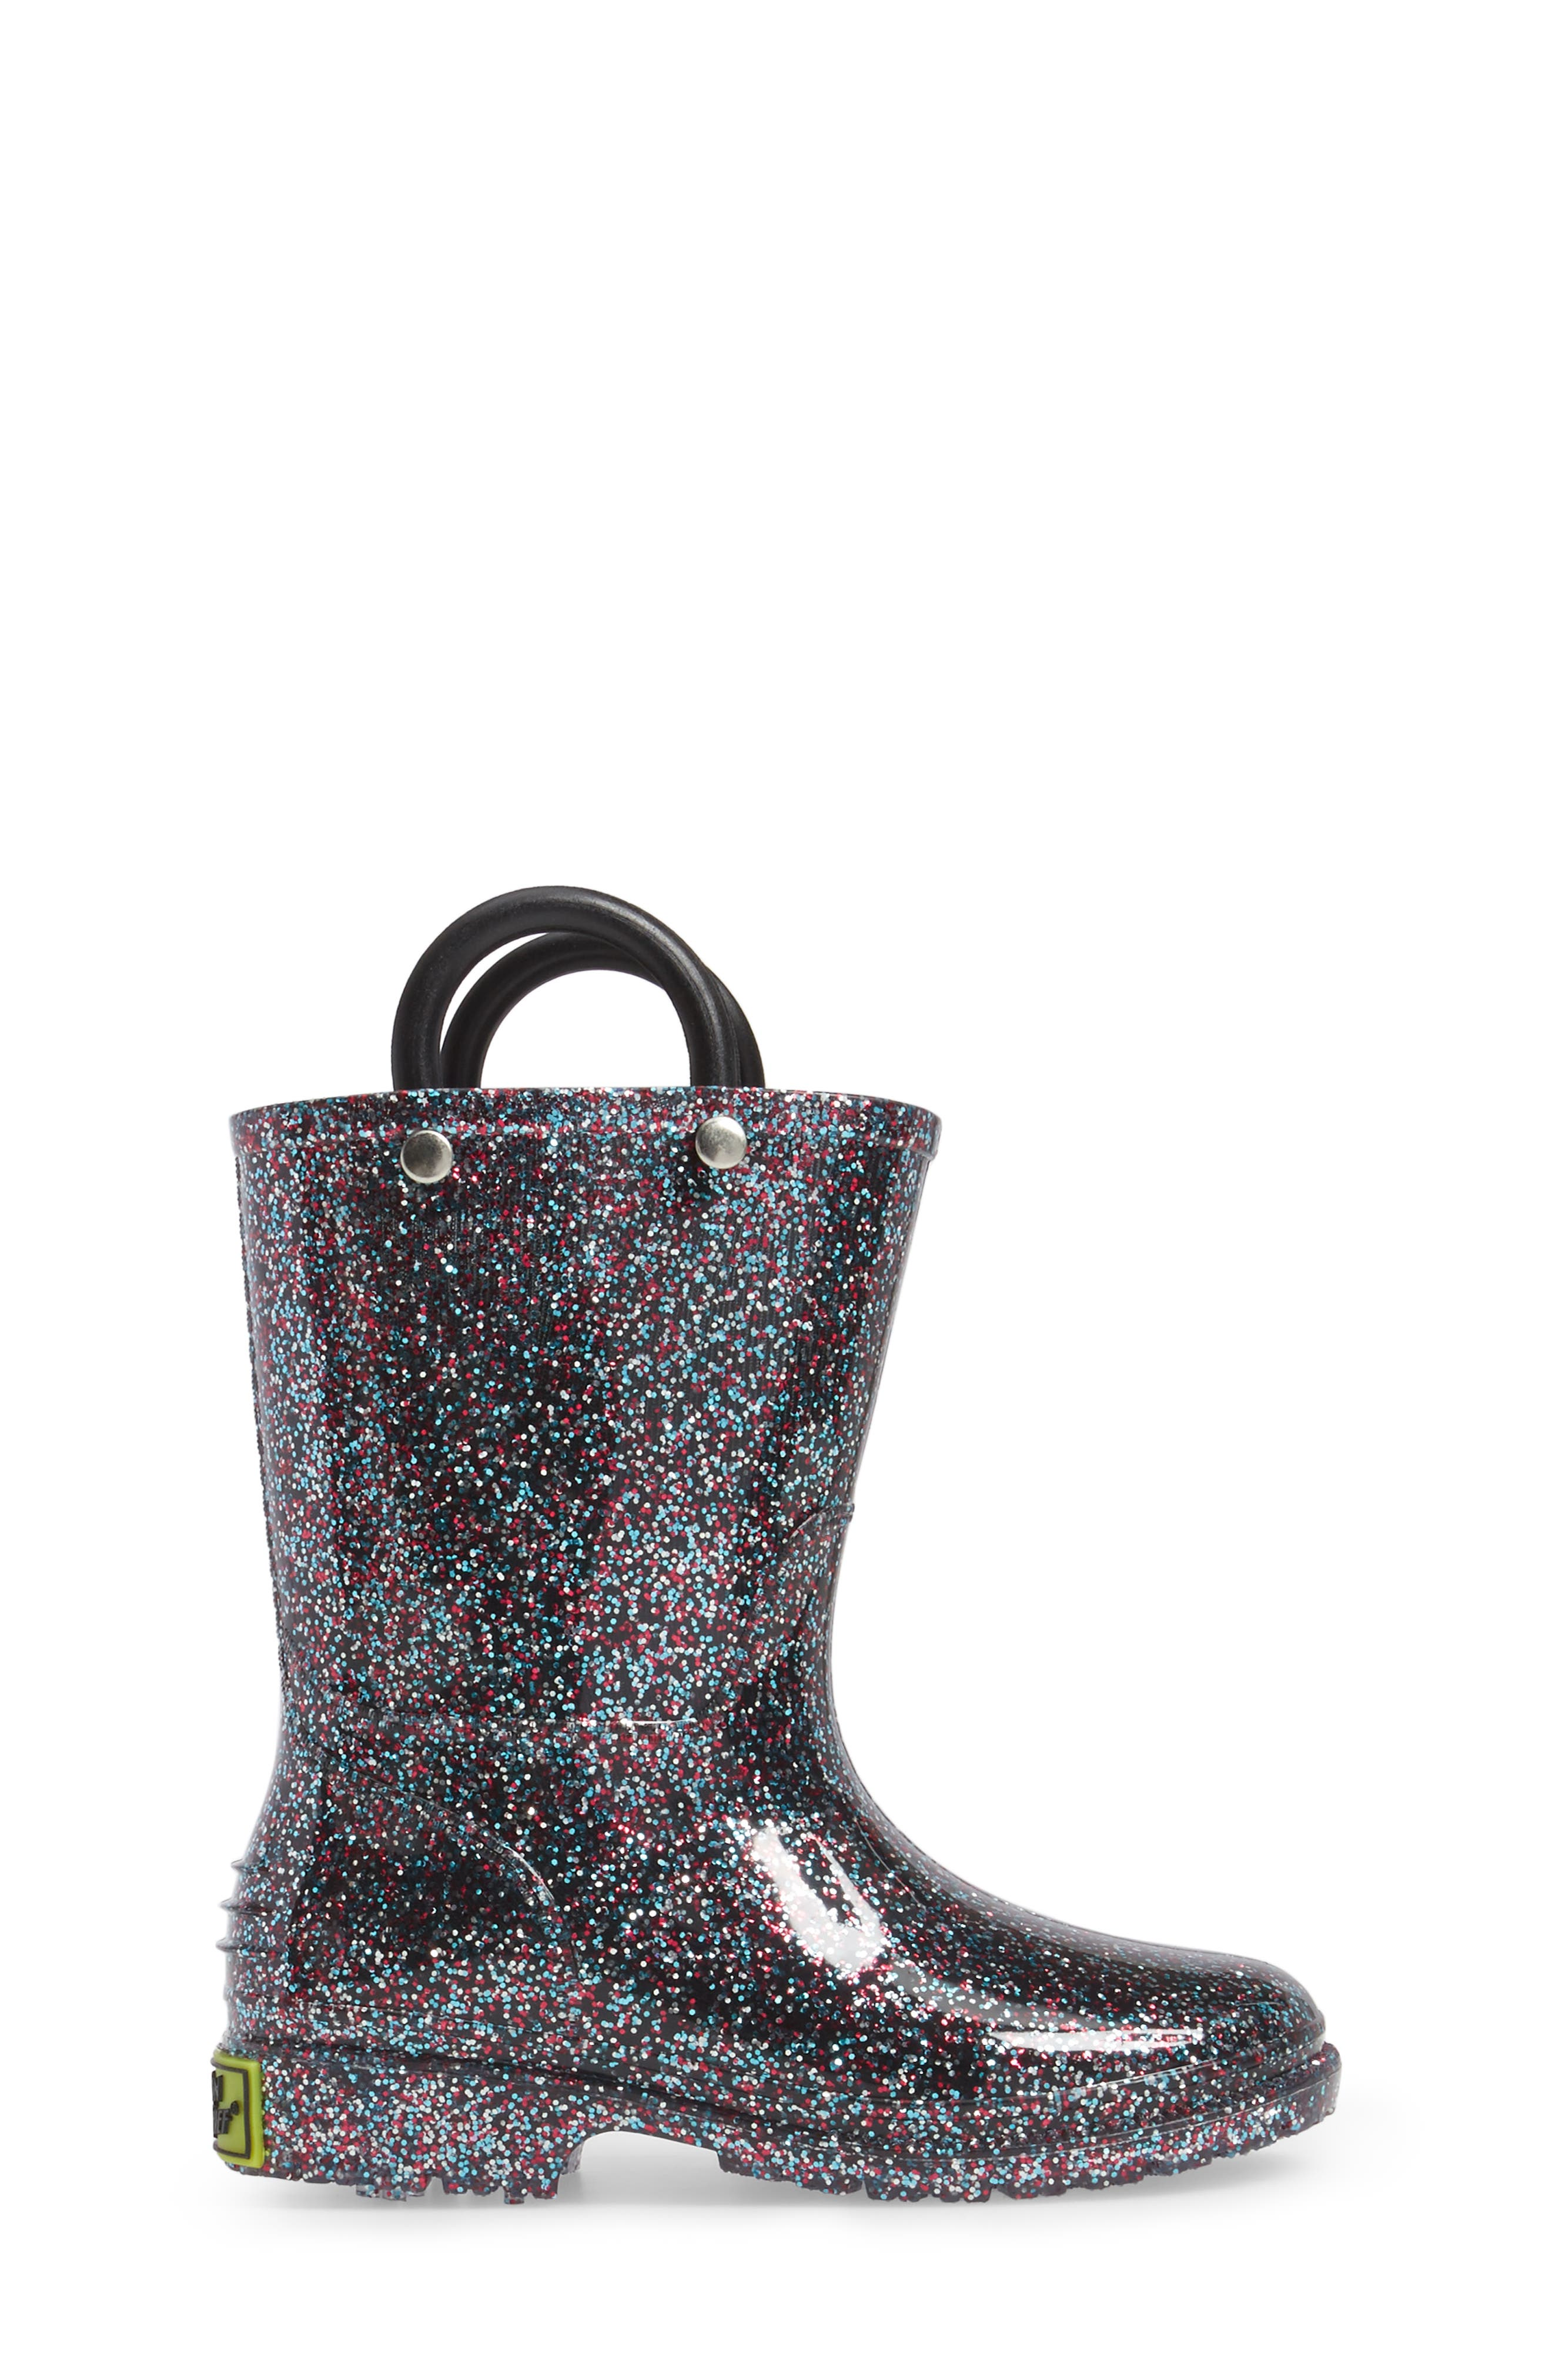 WESTERN CHIEF,                             Glitter Waterproof Rain Boot,                             Alternate thumbnail 3, color,                             MULTI